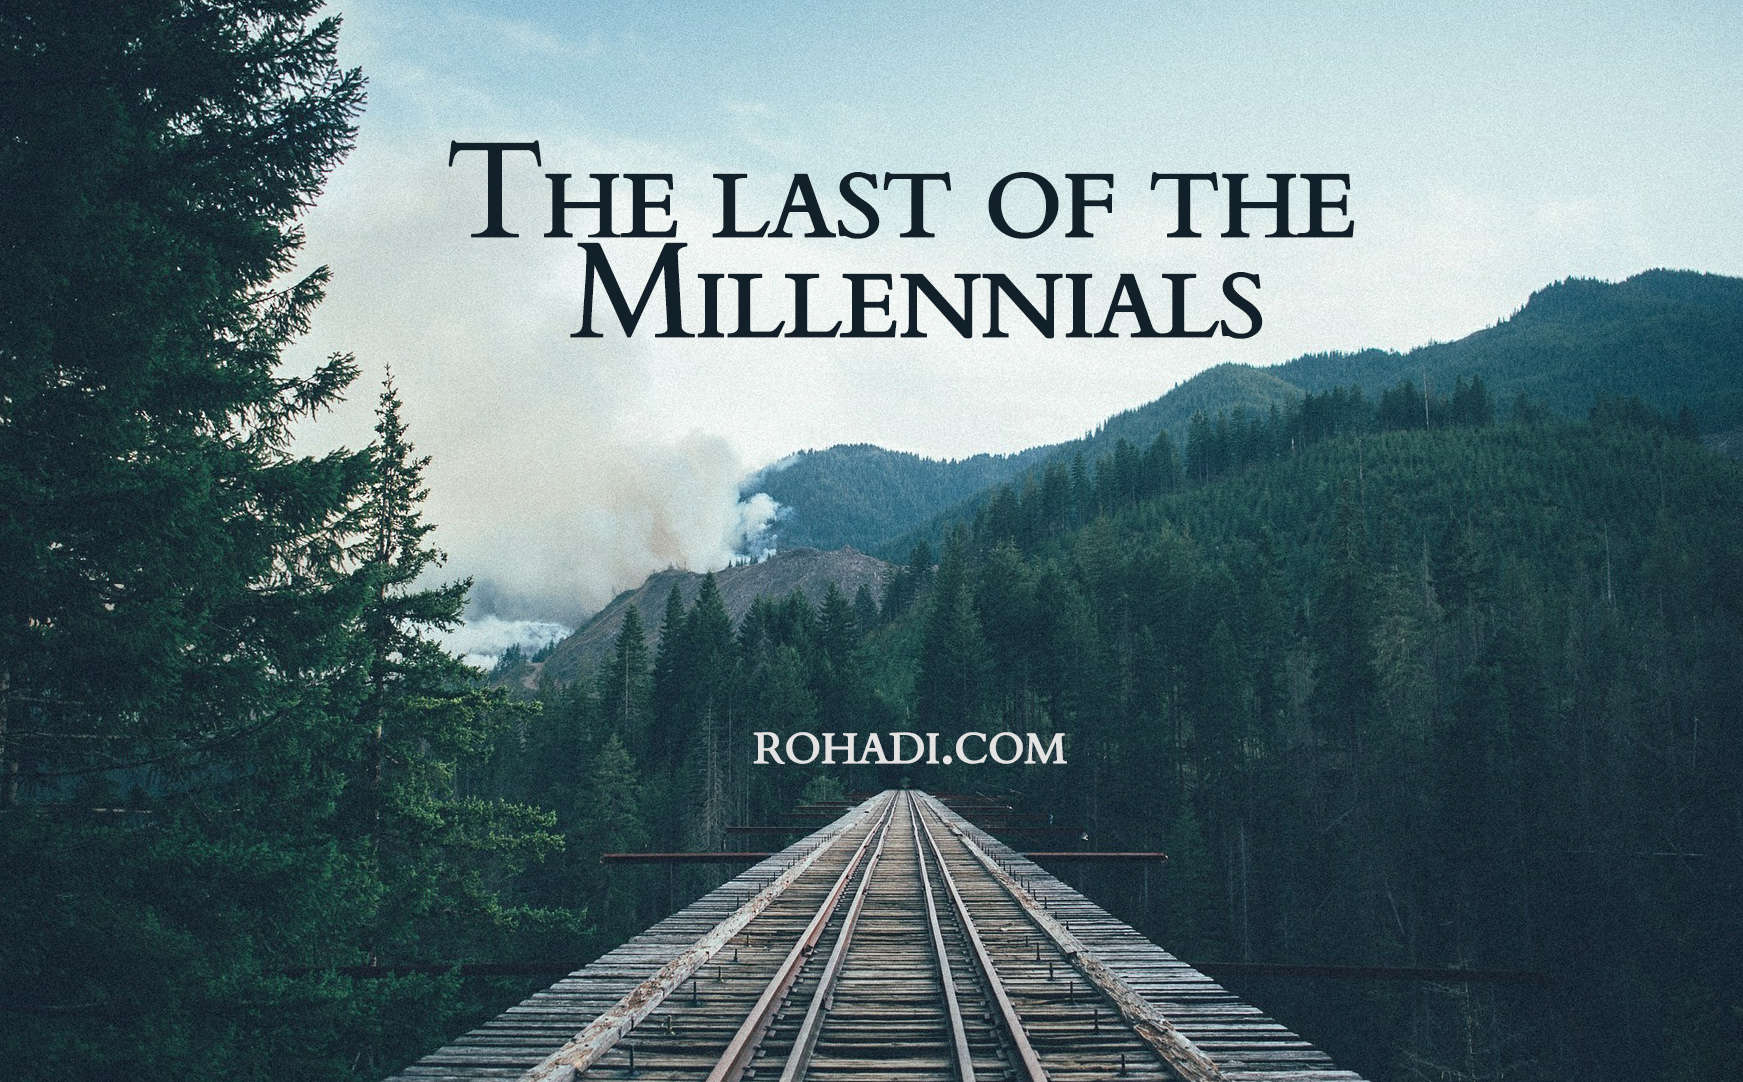 The End. How Losing the Last Millennials from Church Exposes Leadership Problems